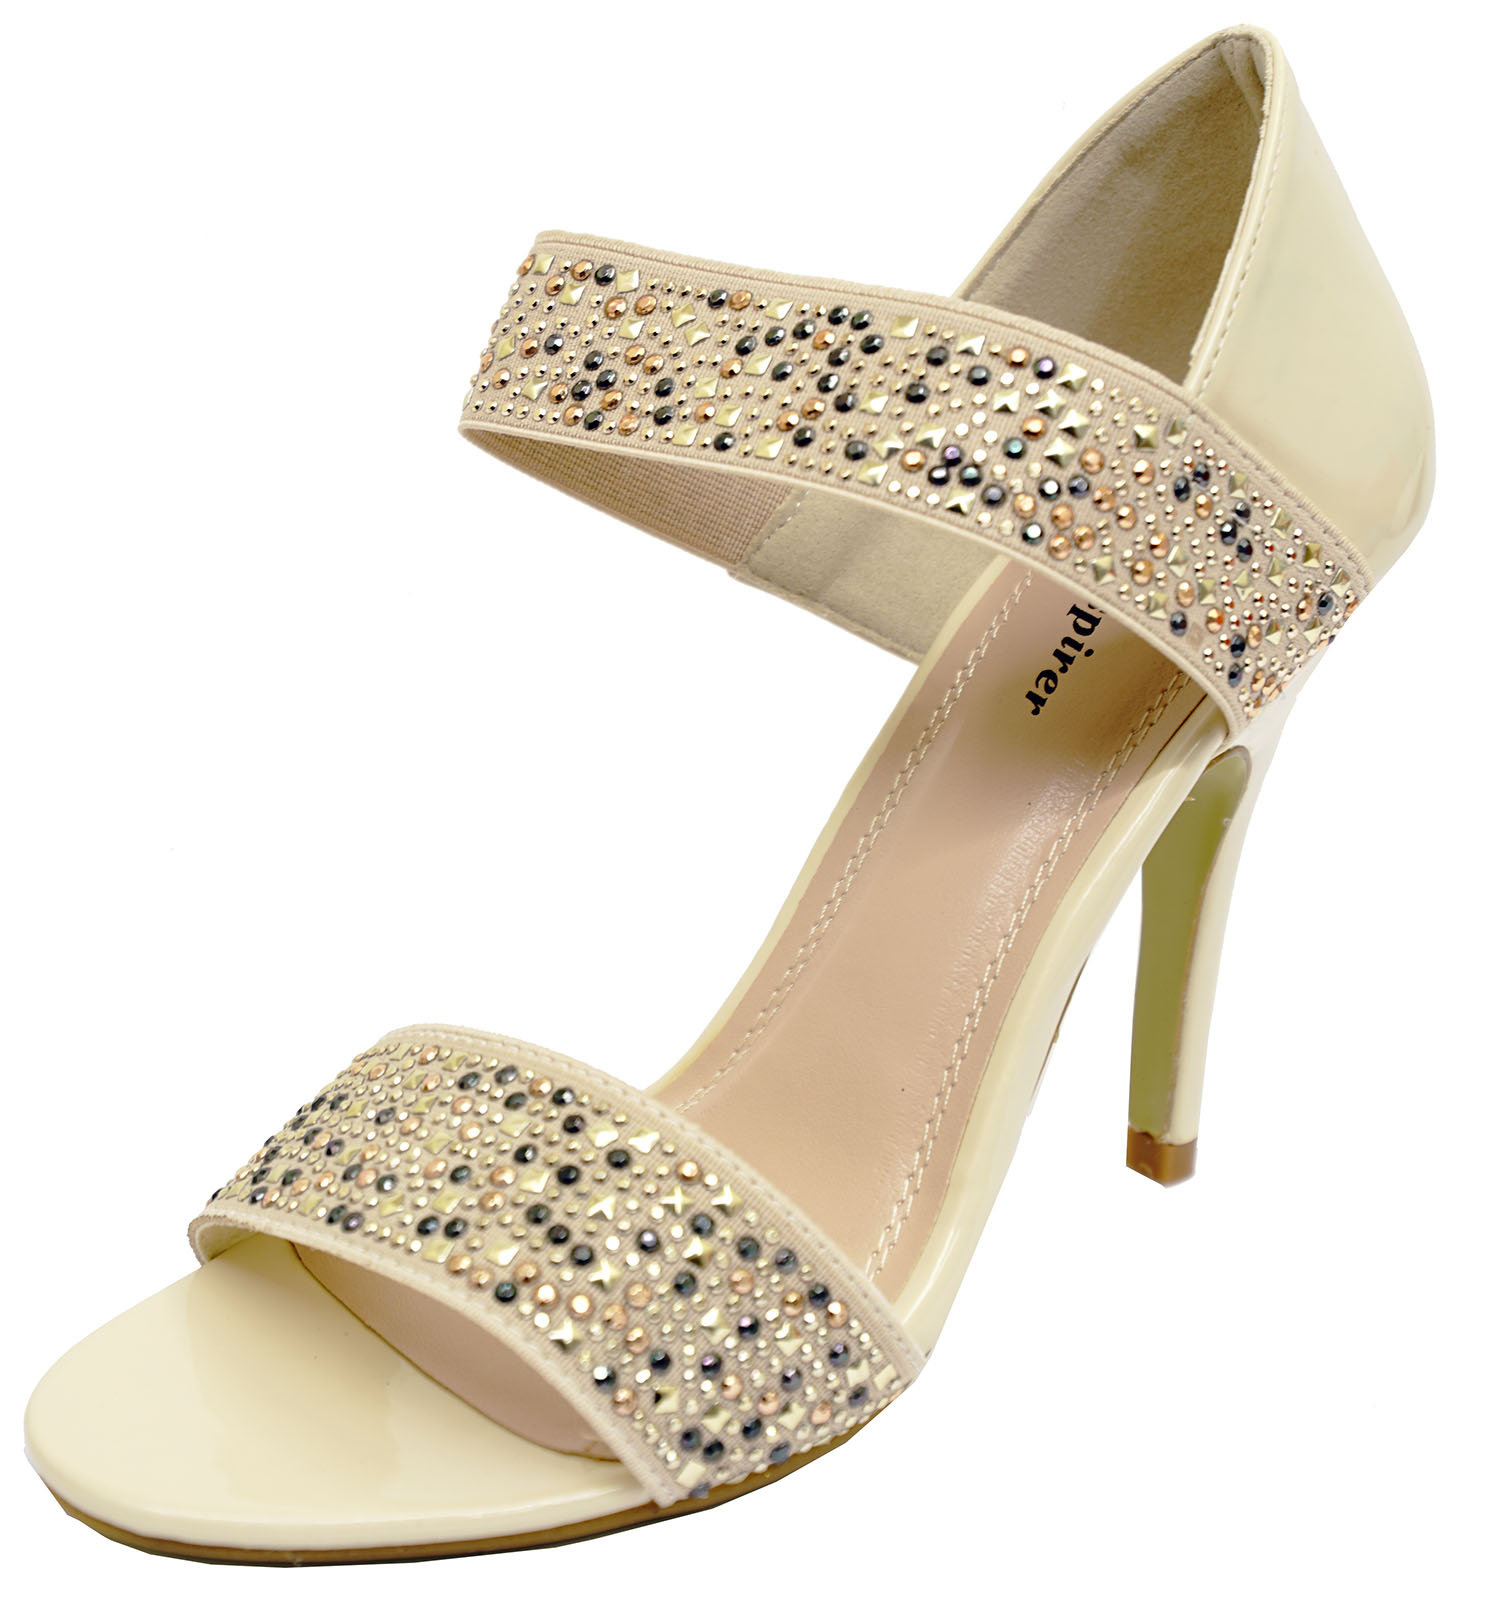 1a618bd0b Sentinel WOMENS BEIGE GOLD STILETTO SLIP-ON ELEGANT SANDALS EVENING PROM  SHOES SIZES 3-8